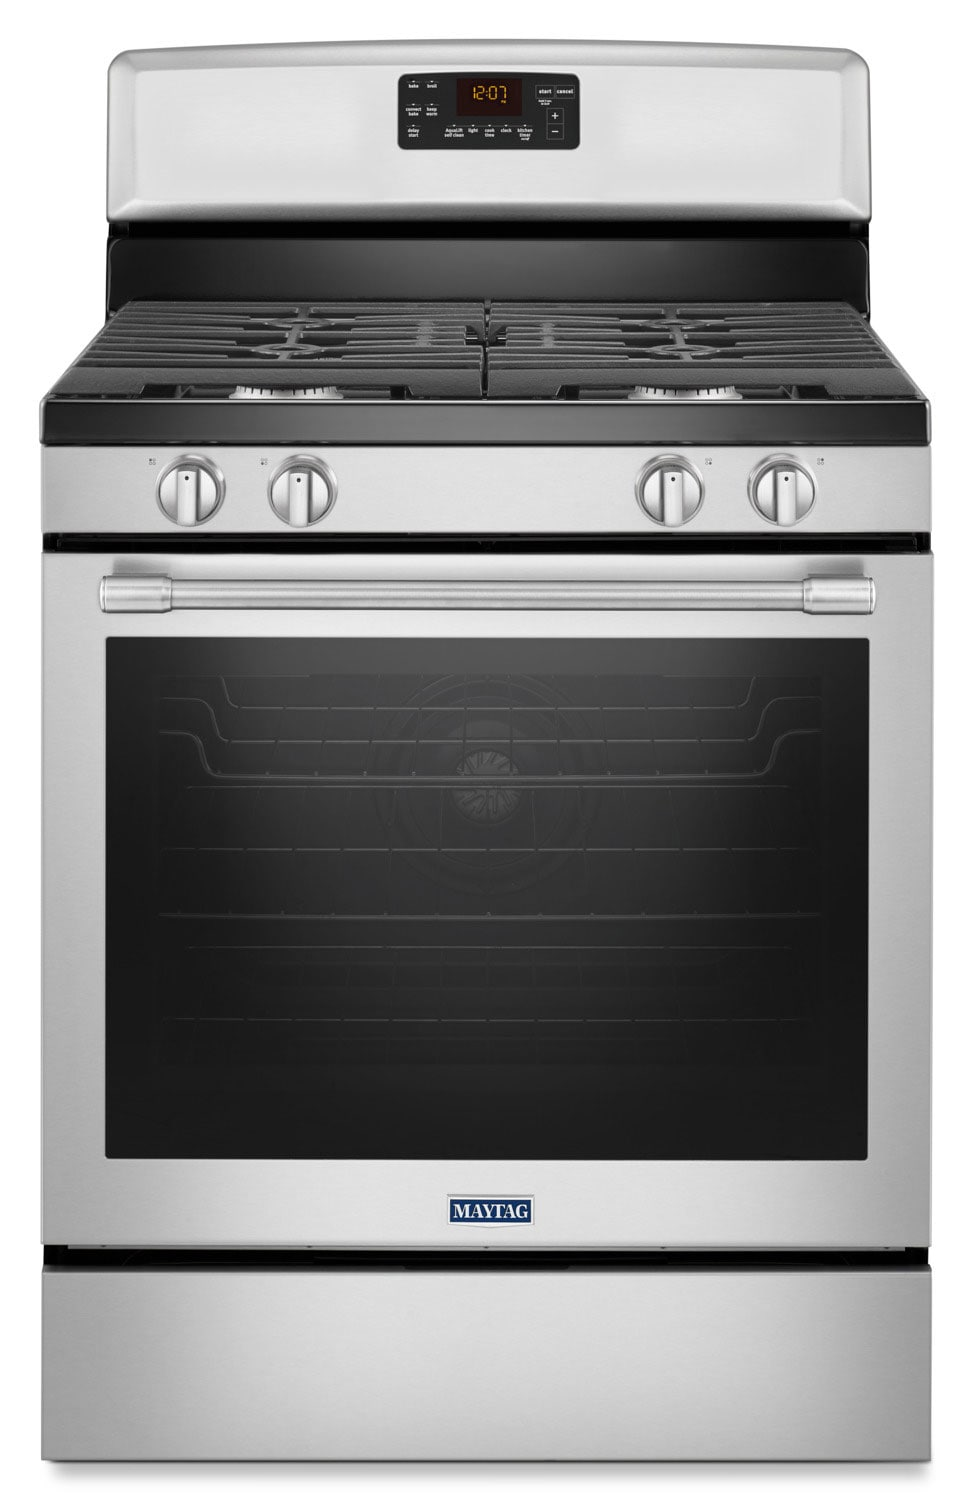 Cooking Products - Maytag 5.8 Cu. Ft. Freestanding Gas Range – MGR8650FZ